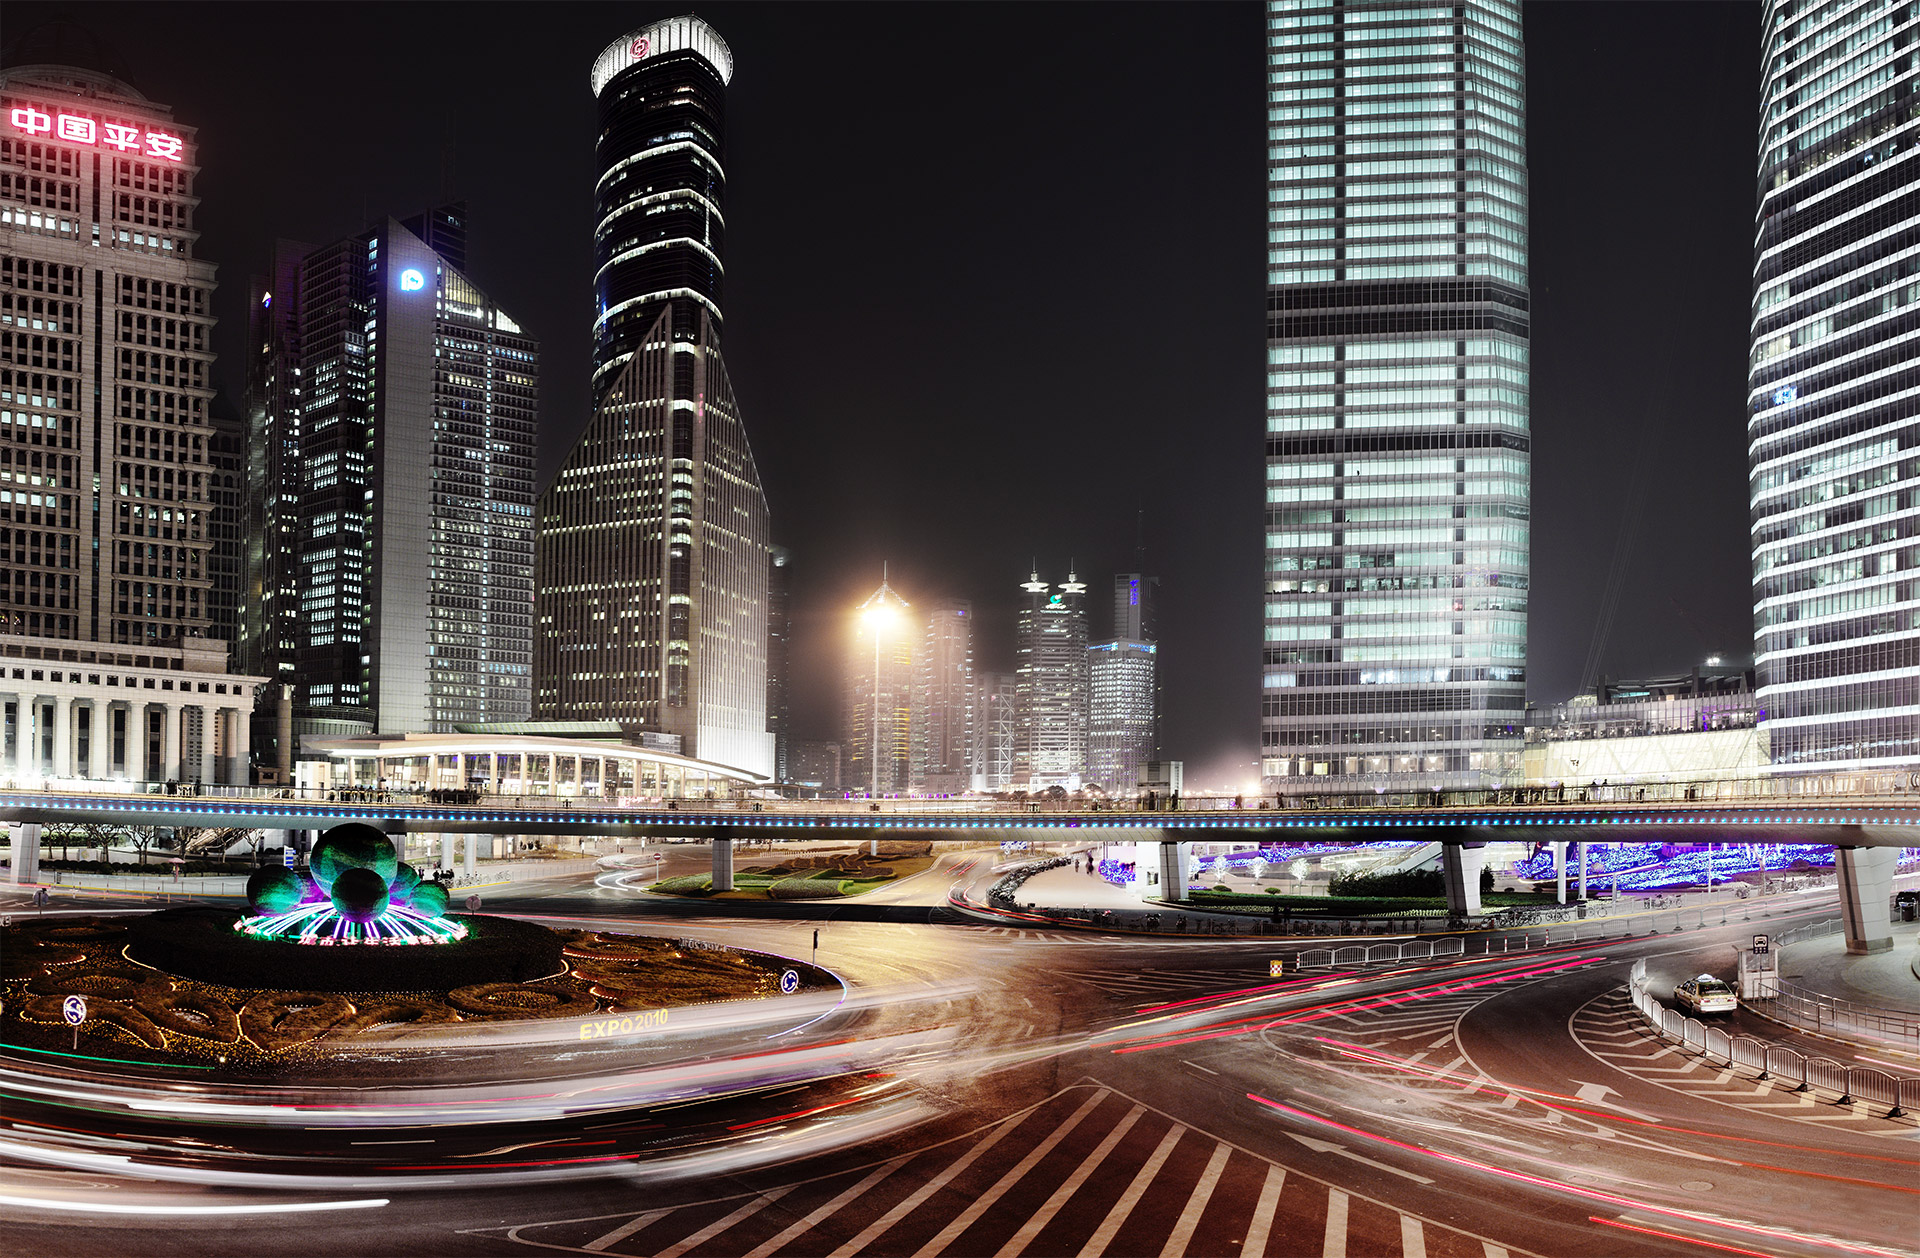 Pudong_roundabout